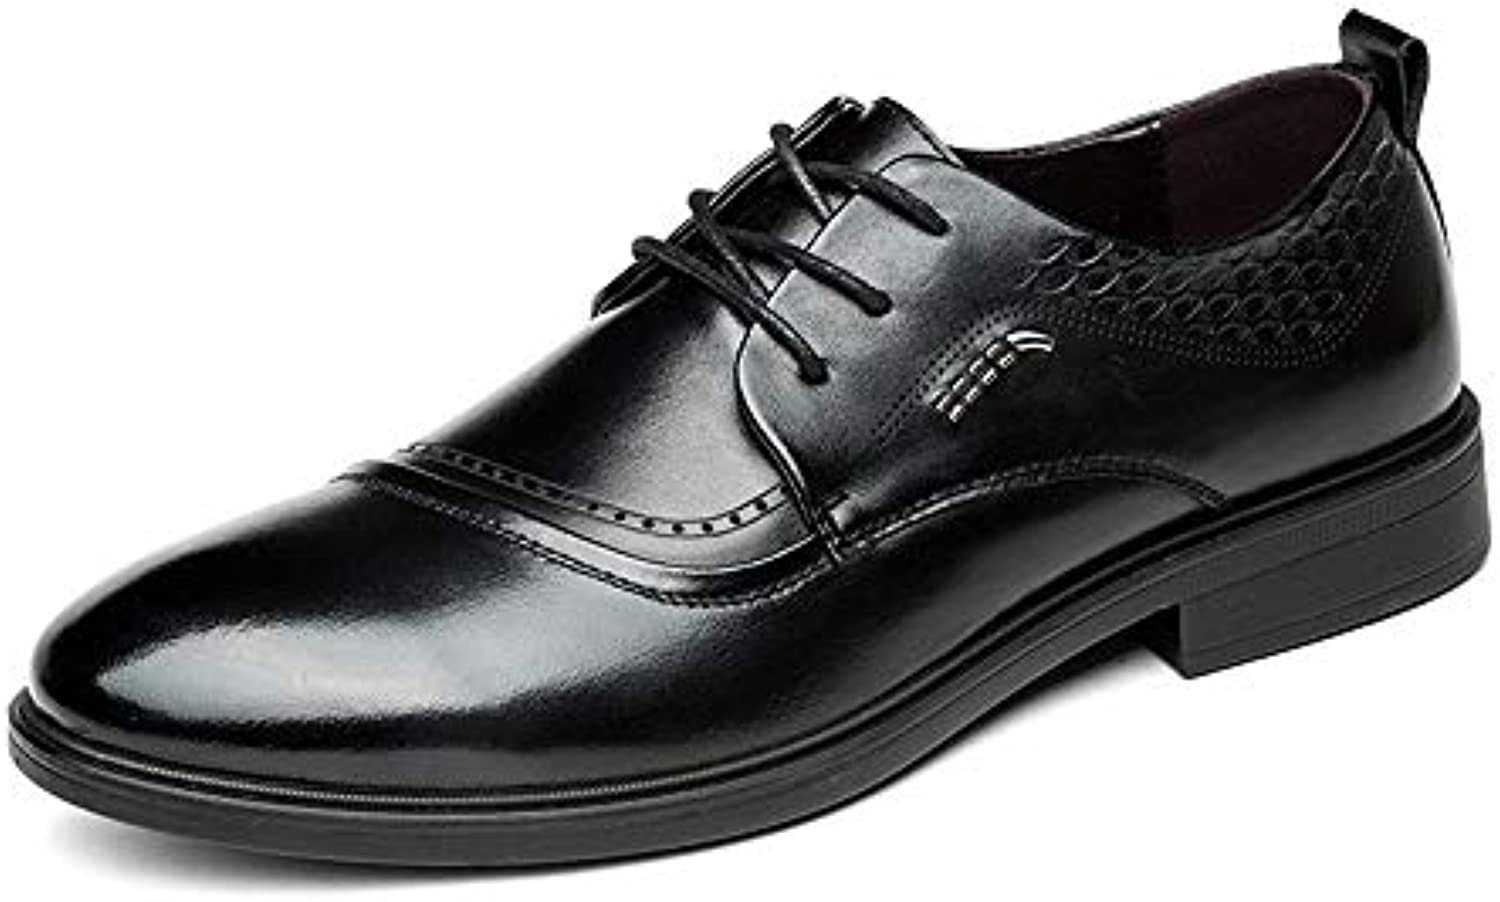 XHD-Scarpe Men's Simple Business Oxford Scarpe Classiche Inglesi Confortevoli in Pelle Casual Classica | In Breve Fornitura